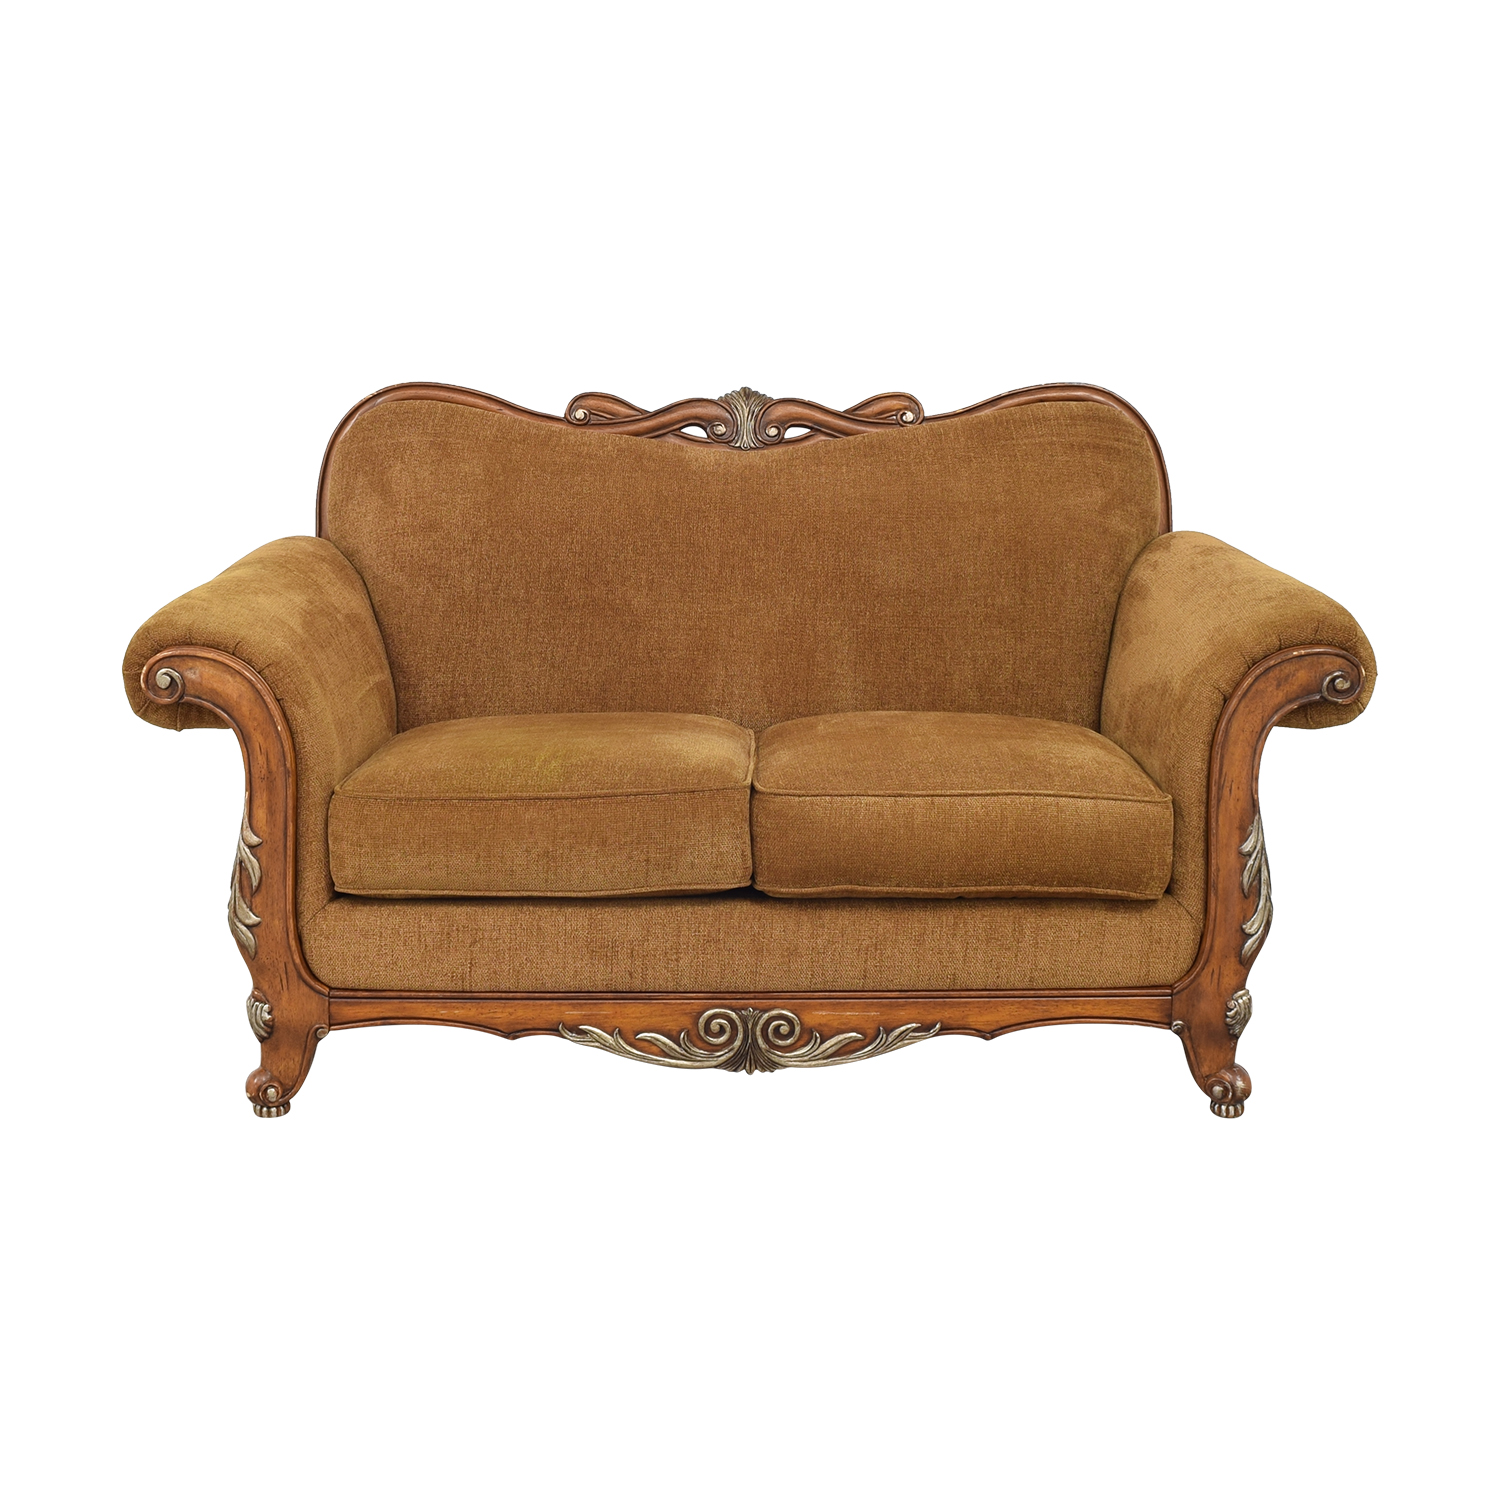 Cindy Crawford Home Cindy Crawford Home Loveseat Sofas